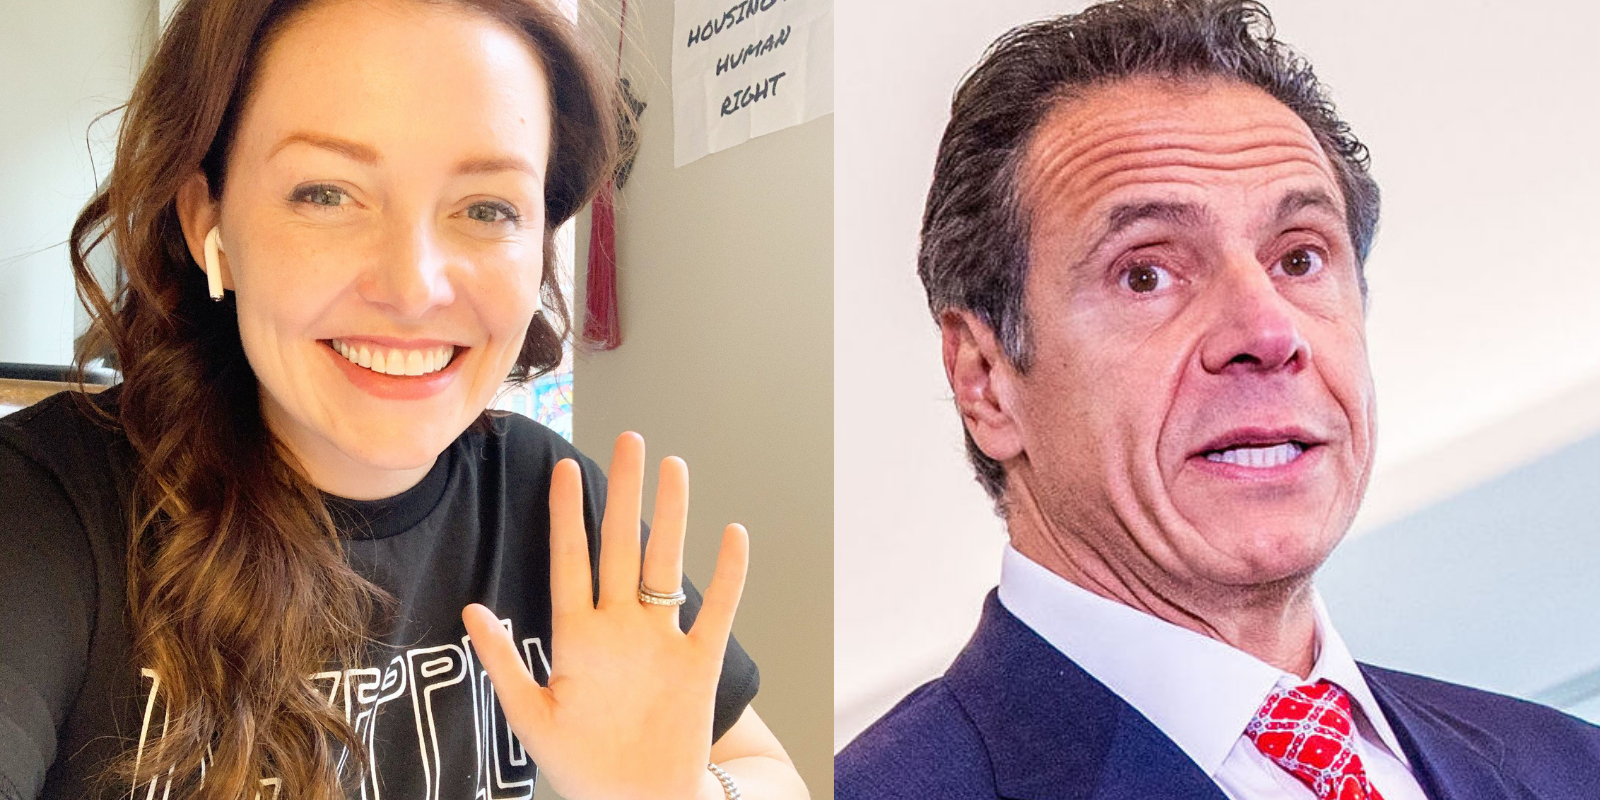 BREAKING: Former Cuomo aide reveals her allegations of sexual assault